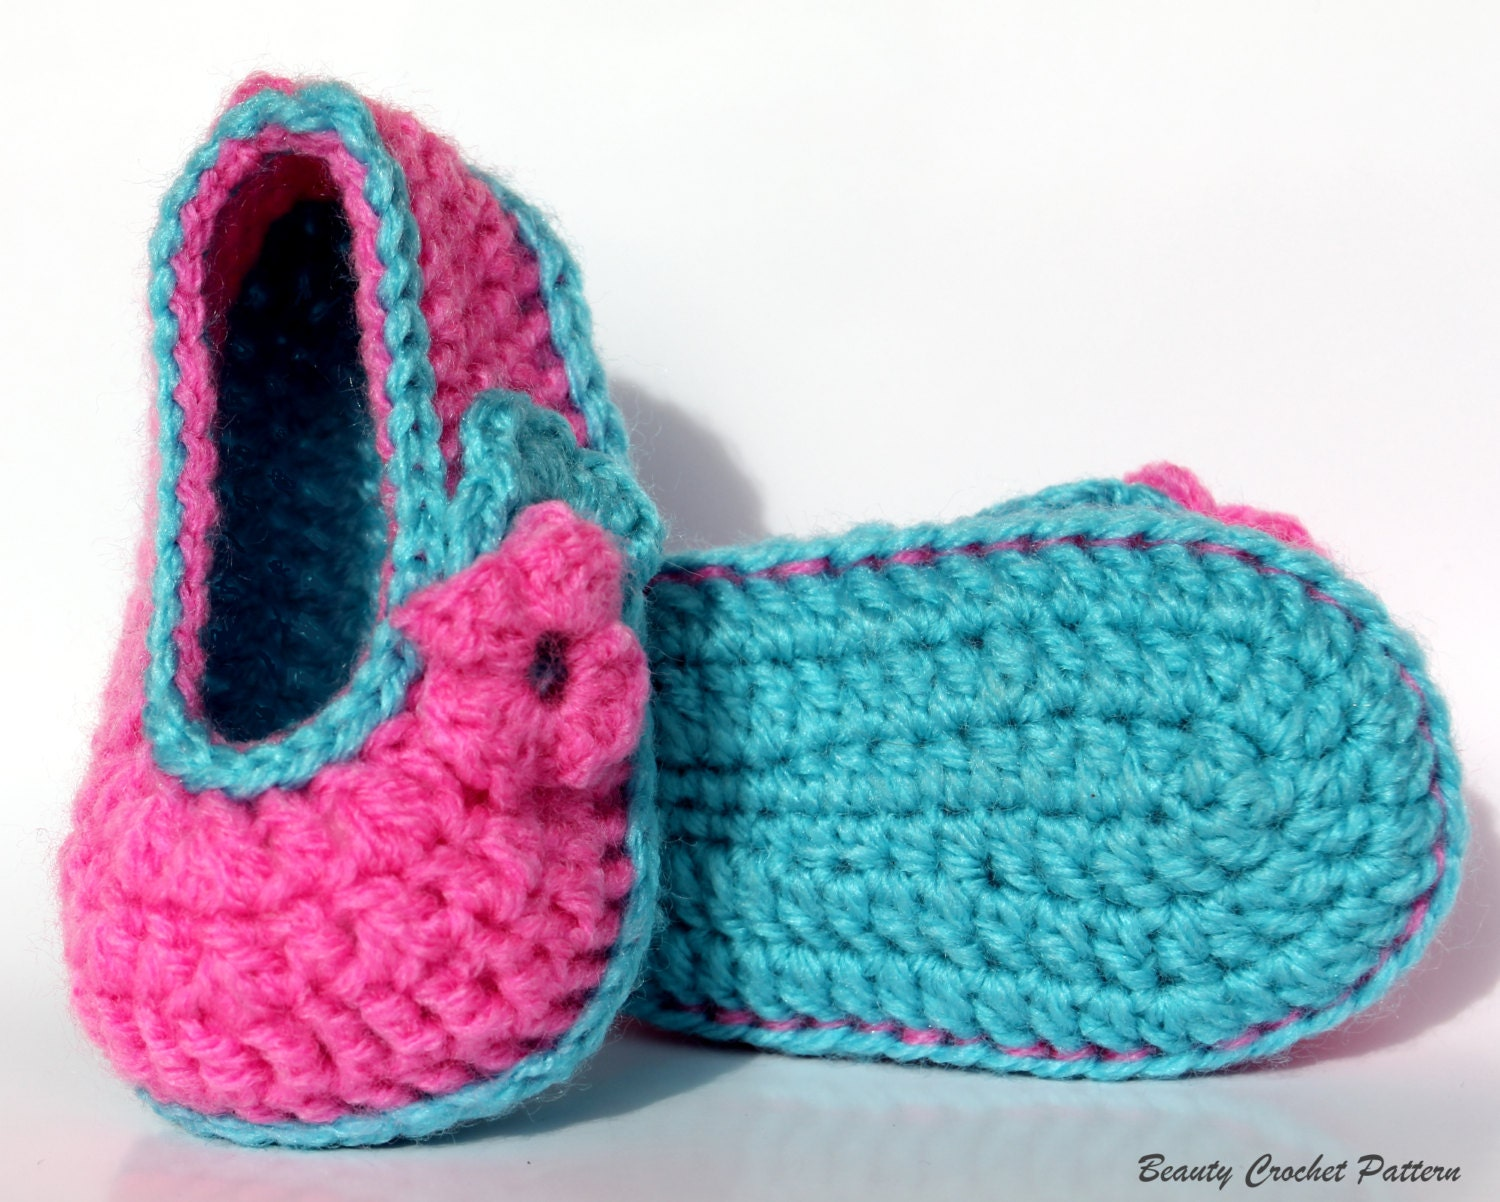 Baby girl crochet shoes generally come in three different sizes: small for ages 0 to 3 months, medium for 3 to 6 months, and large for 6 to 12 months. When searching the inventory on eBay for the perfect shoes, keep in mind that babies are notorious for kicking their shoes off.